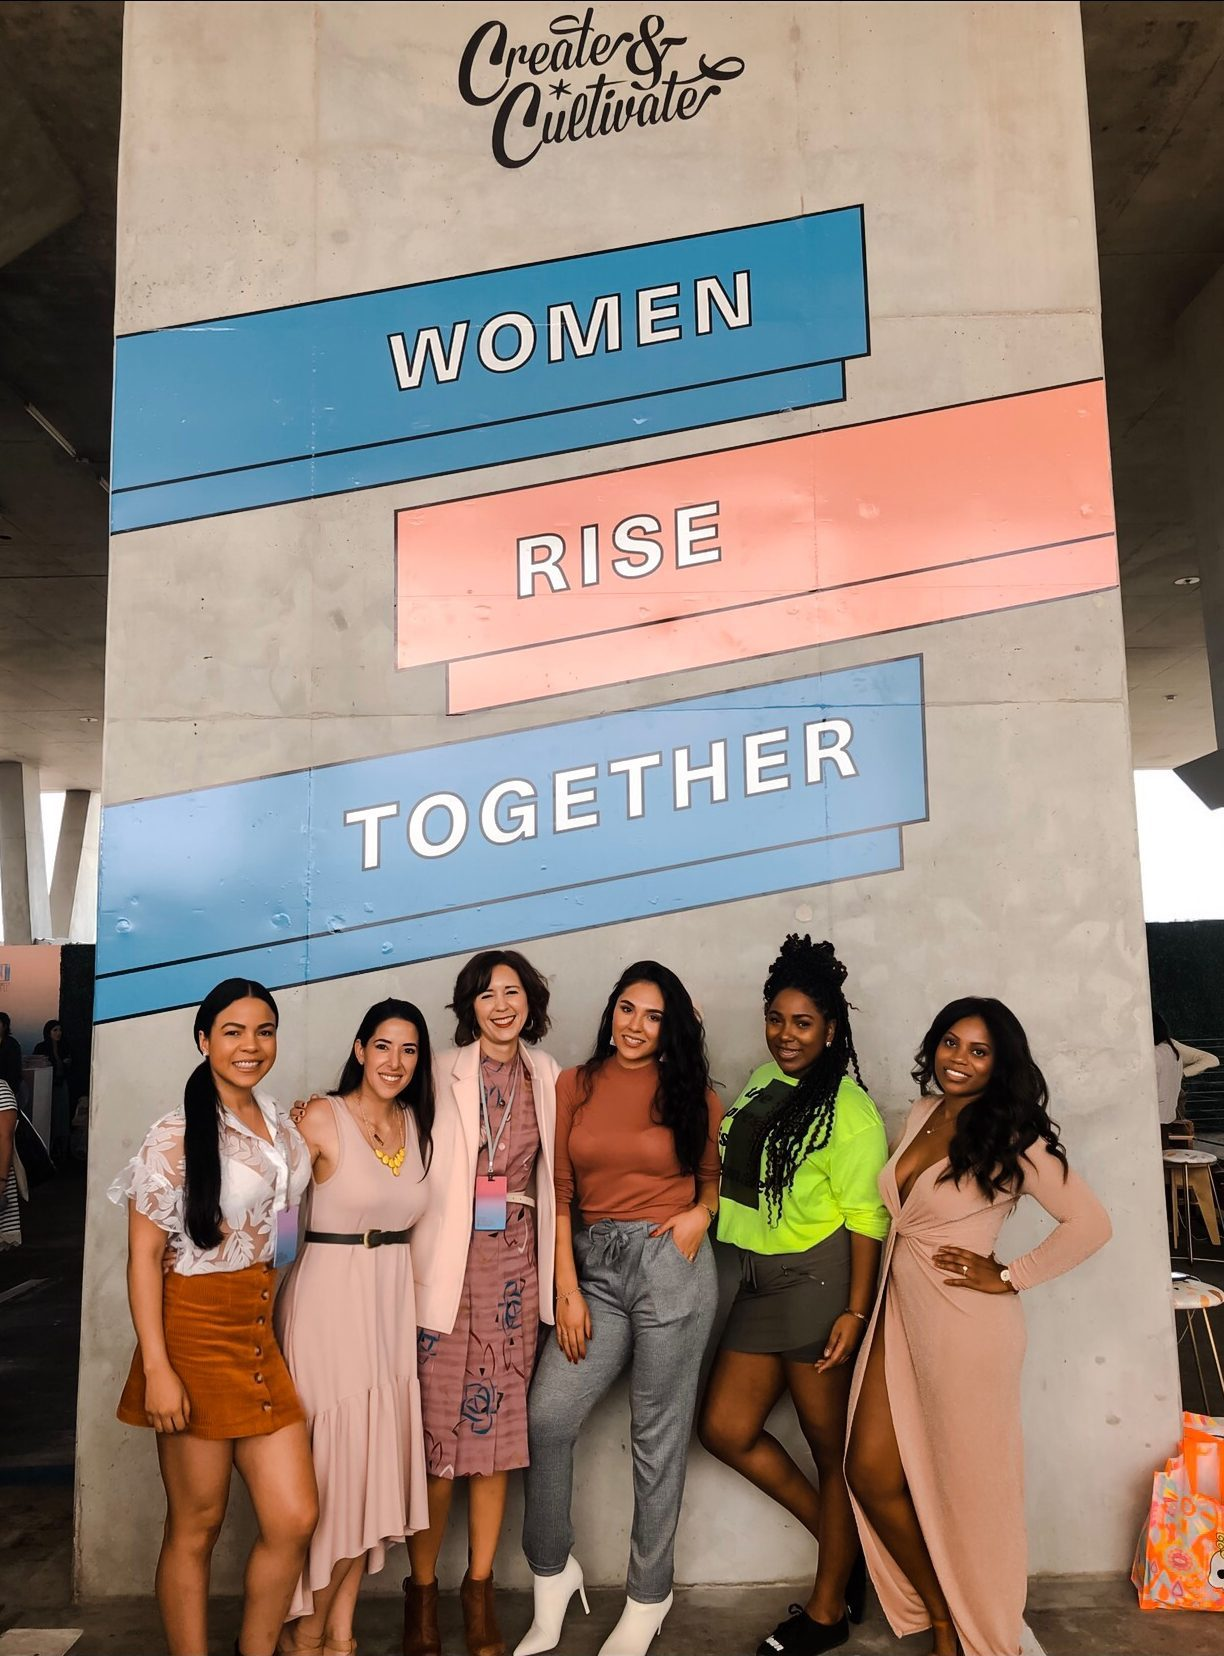 At Create & Cultivate in #Miami, I ASKED 5 FEMALE POWERHOUSES TO SHARE THE ADVICE THEY WISH SOMEONE GAVE THEM WHEN THEY STARTED IN THEIR CAREERS!